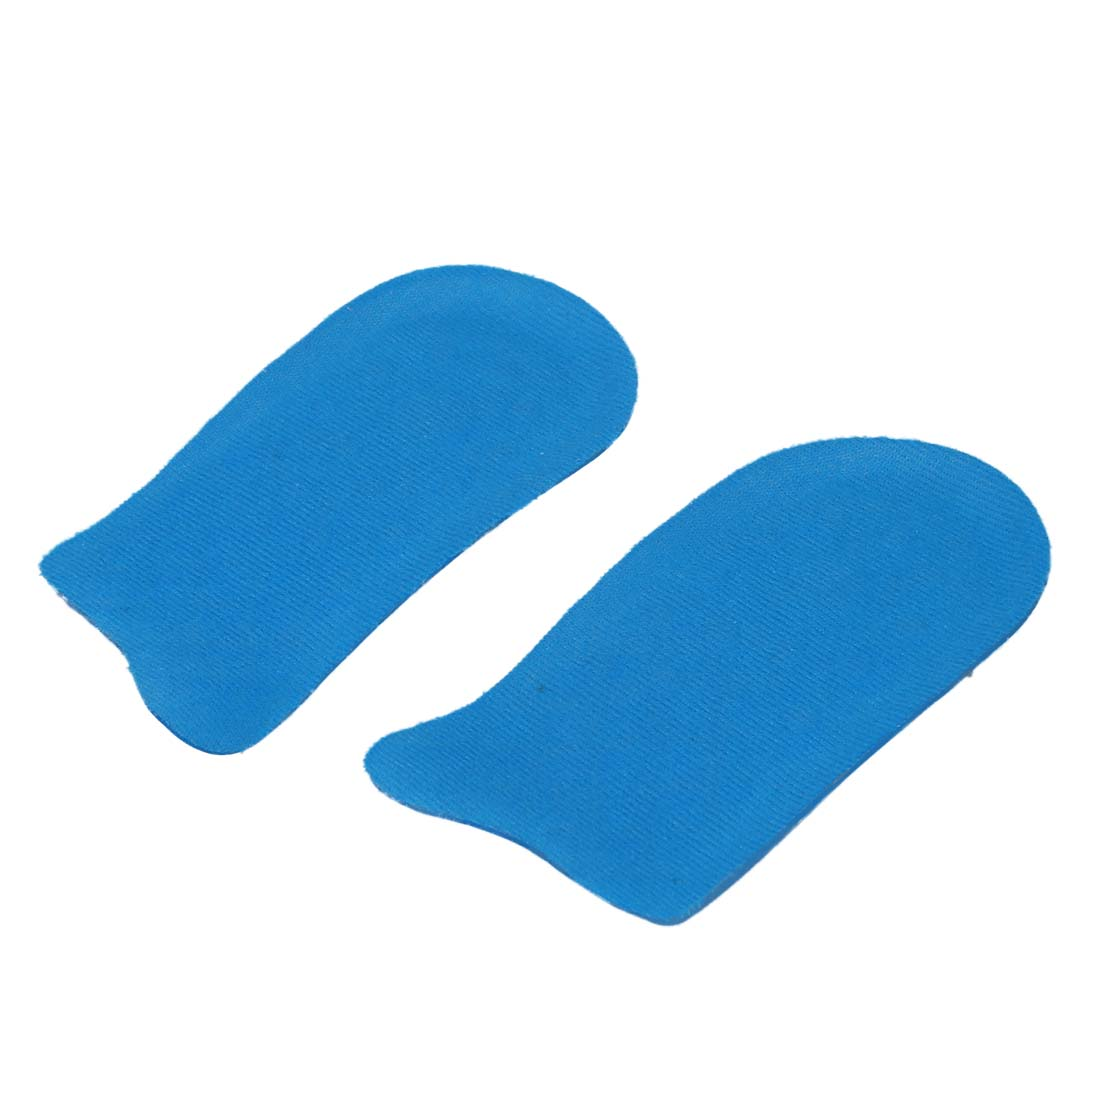 Fashion Boutique Pairlight Blue Silicone Gel Insole Best Heel Pad Insertion 4.3 cm Up ballu plaza ext bep ext 1500 1500